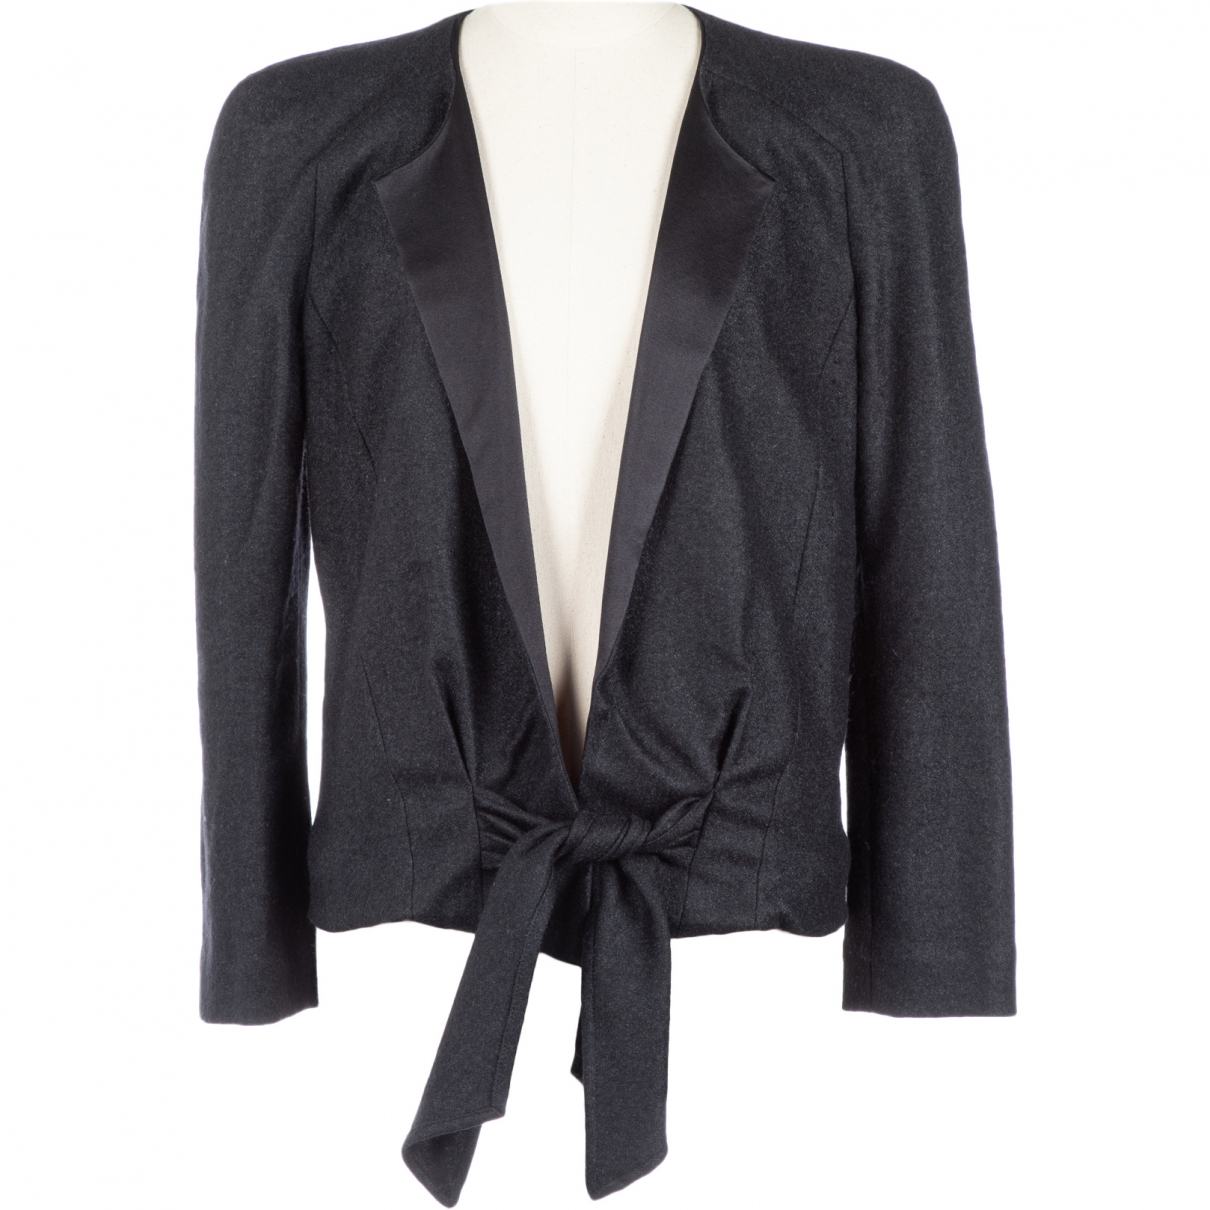 Isabel Marant N Black Wool jacket for Women 1 0-5